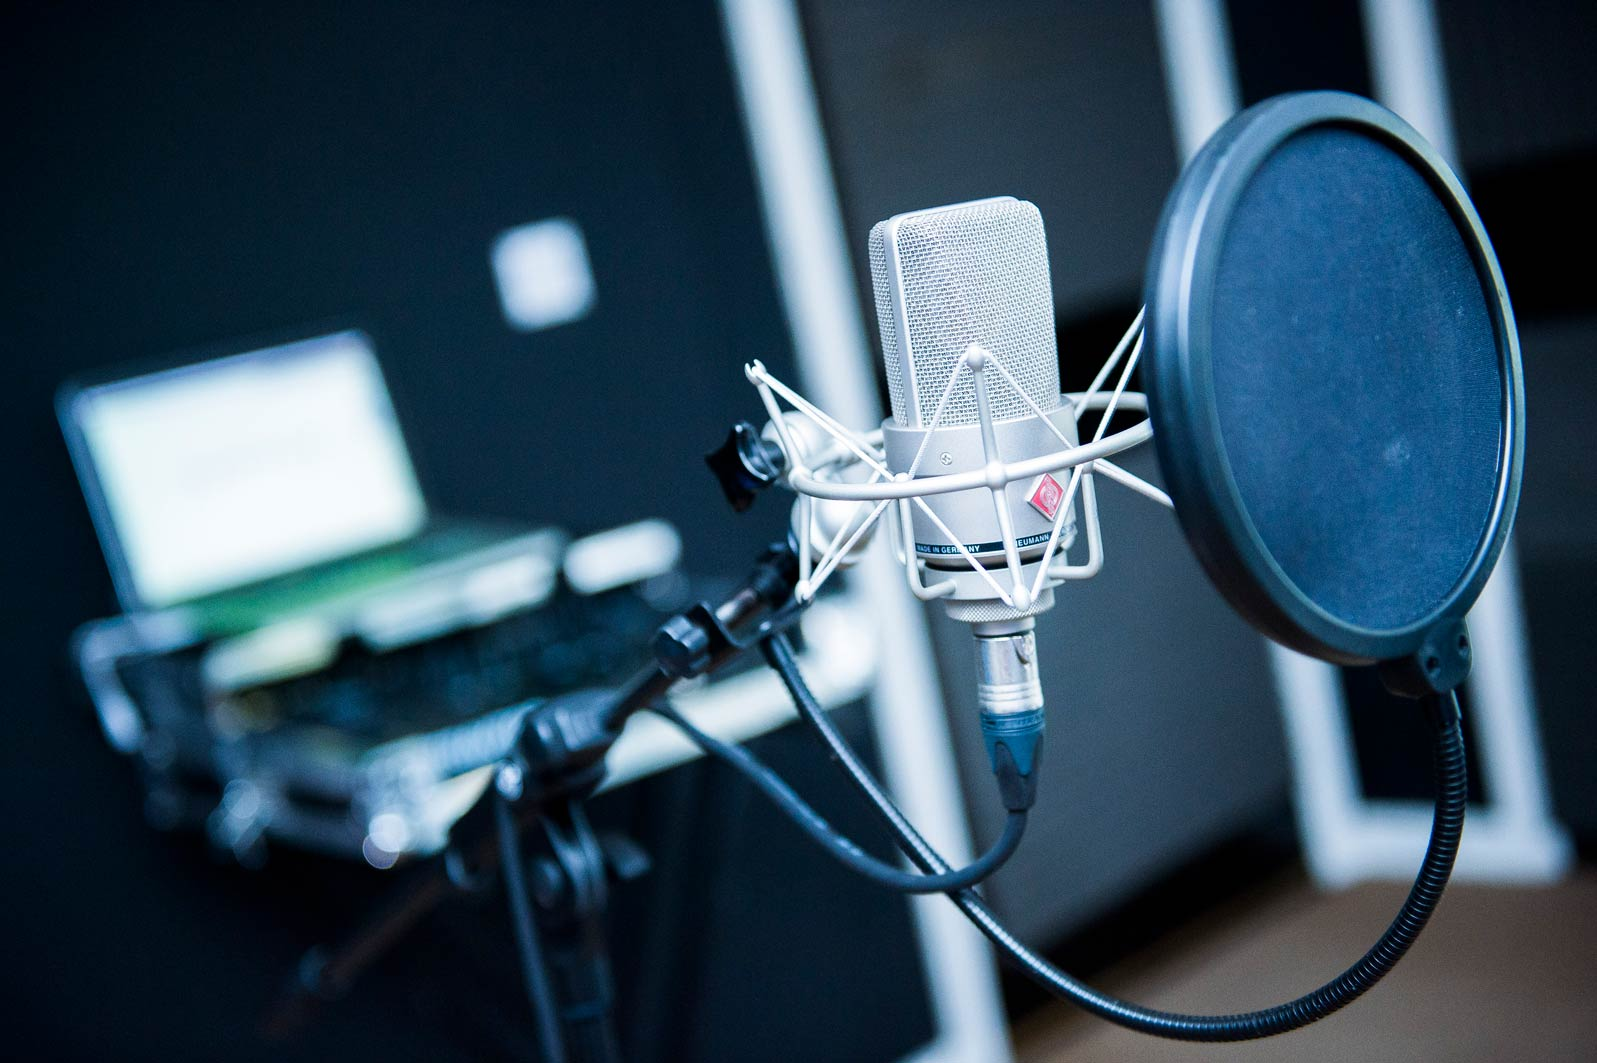 I will record a professional,  millennial american voice over